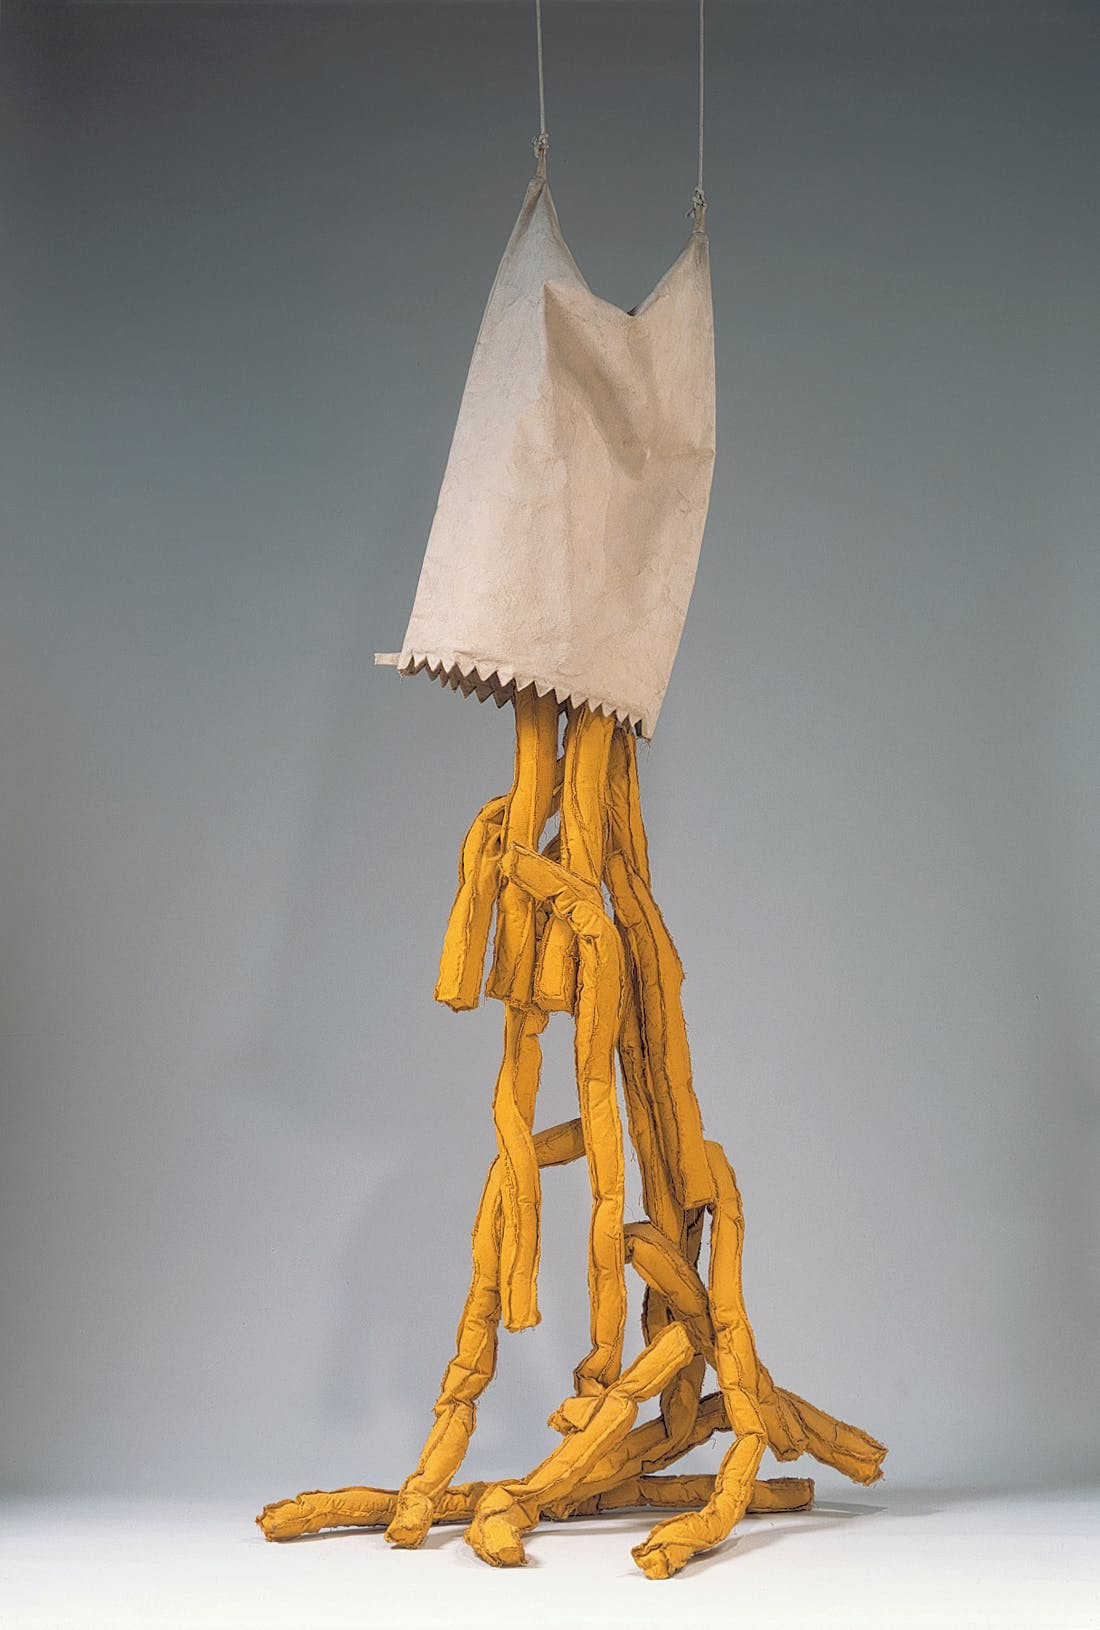 Claes Oldenburg, Shoestring Potatoes Spilling from a Bag, 1966